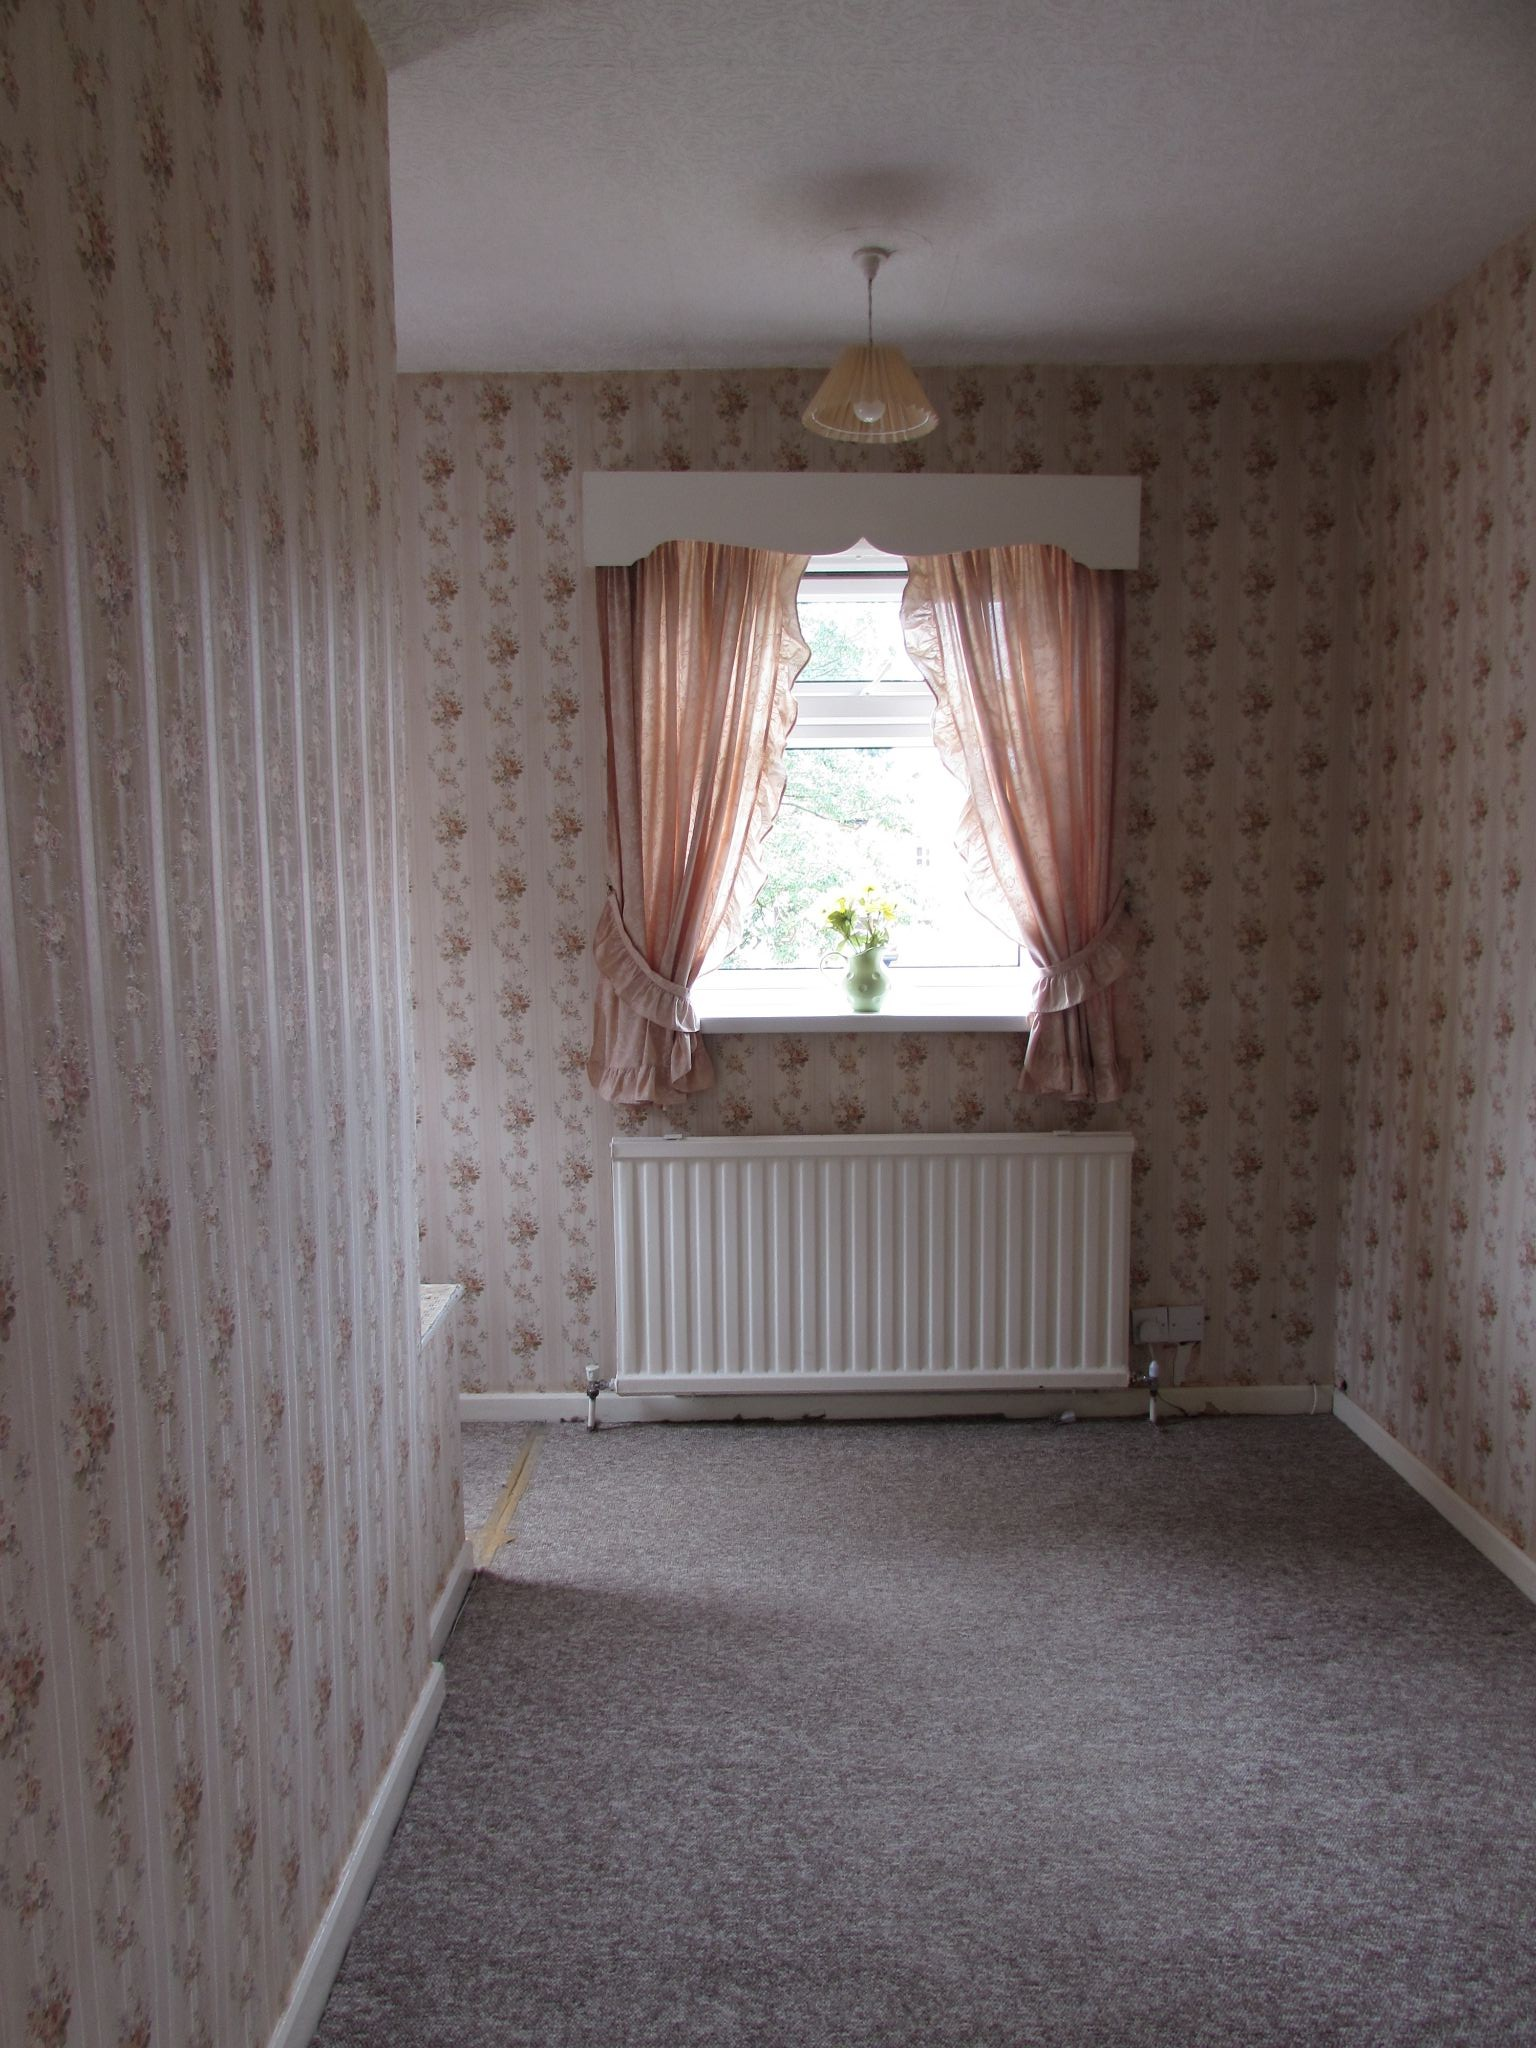 3 Bedroom End Terraced House For Sale - Bedroom 3